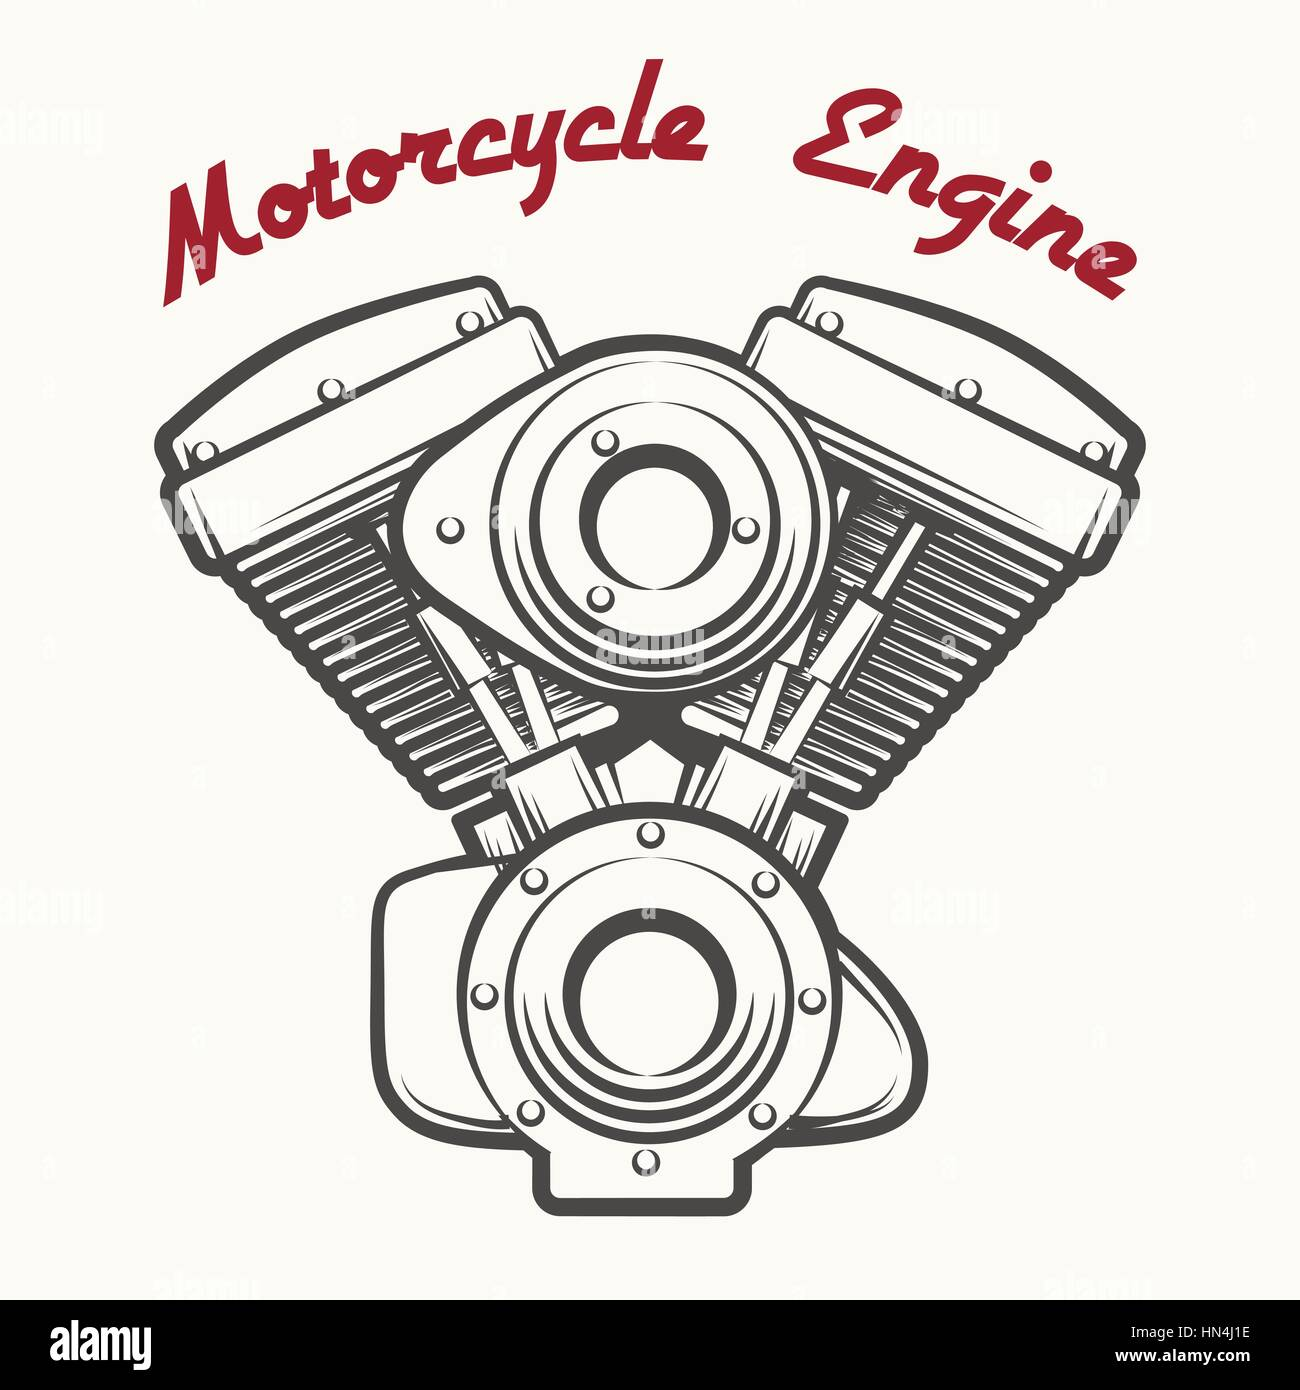 hight resolution of single cylinder motorcycle engine diagram motorcycle pinterest